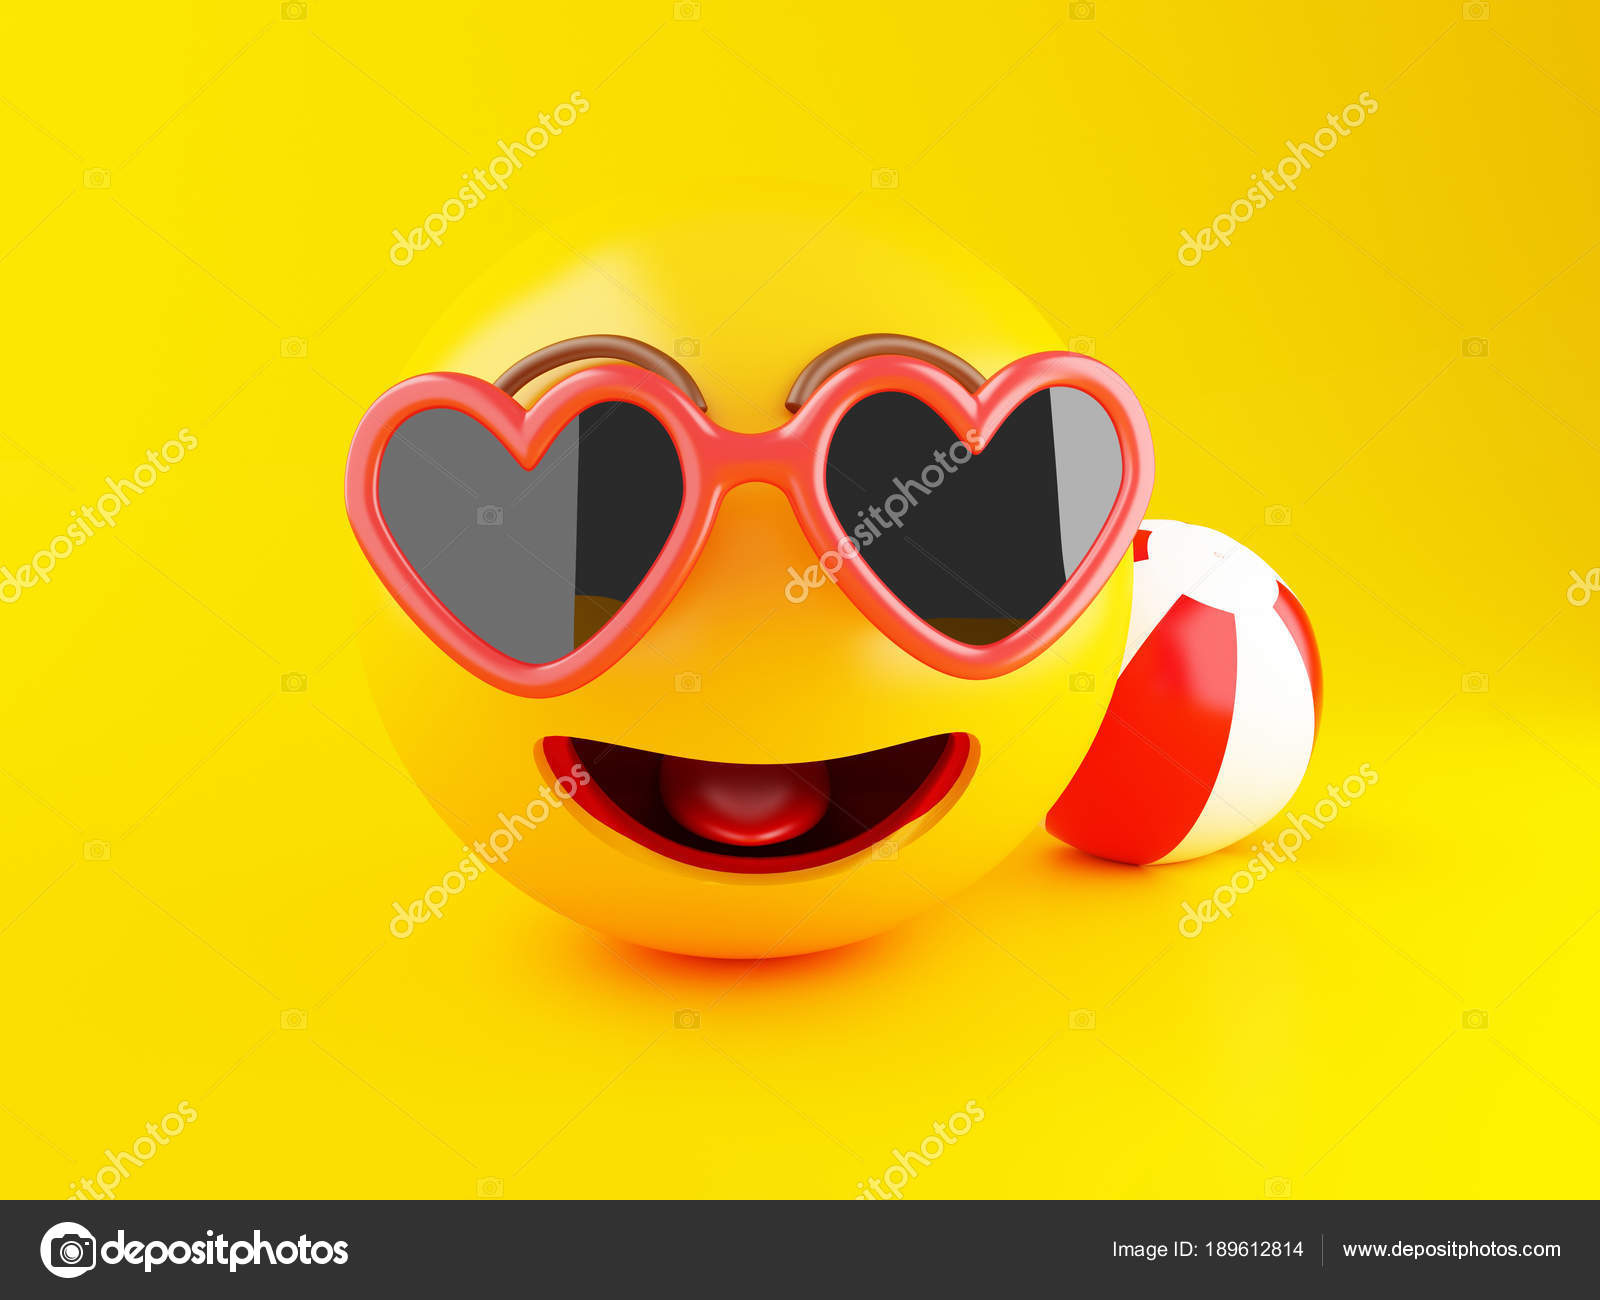 Images Vacation Emoji 3d Emoji With Sunglasses Summer Vacation Concept Stock Photo C Nicomenijes 189612814